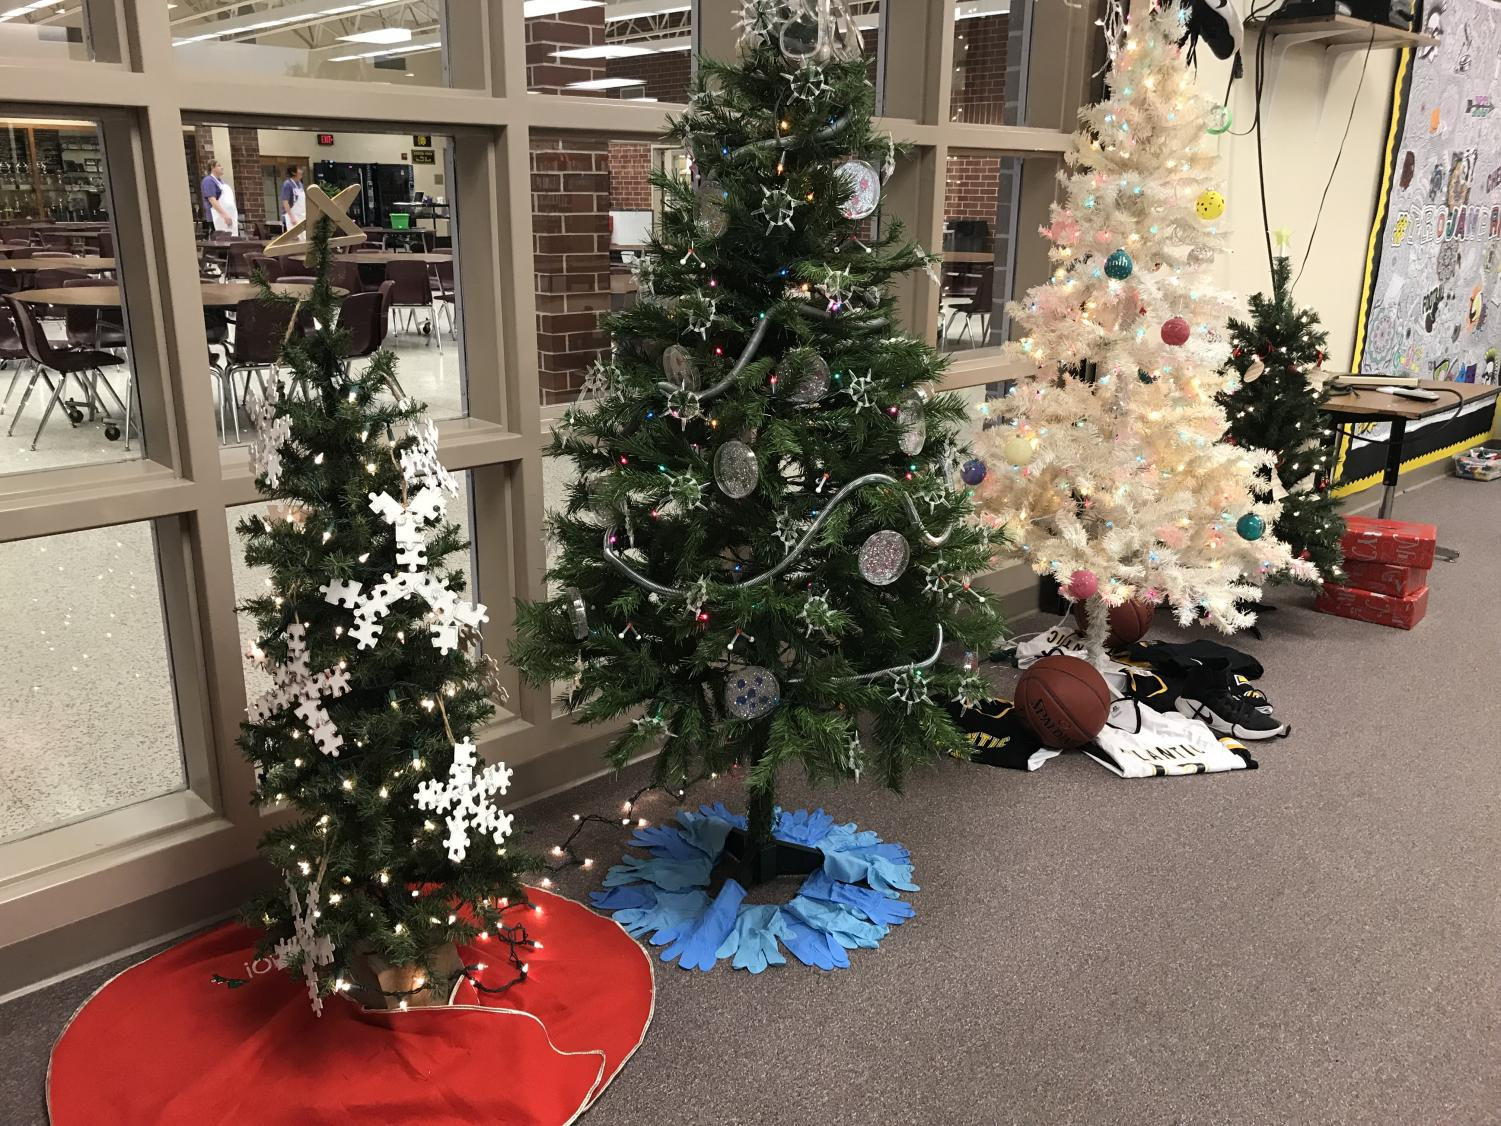 SPREADING CHEER - Christmas trees are being displayed in the media center for the remainder of the semester. Students can vote for their favorite trees during the week of semester tests by dropping money into boxes set in front of each activity's tree.